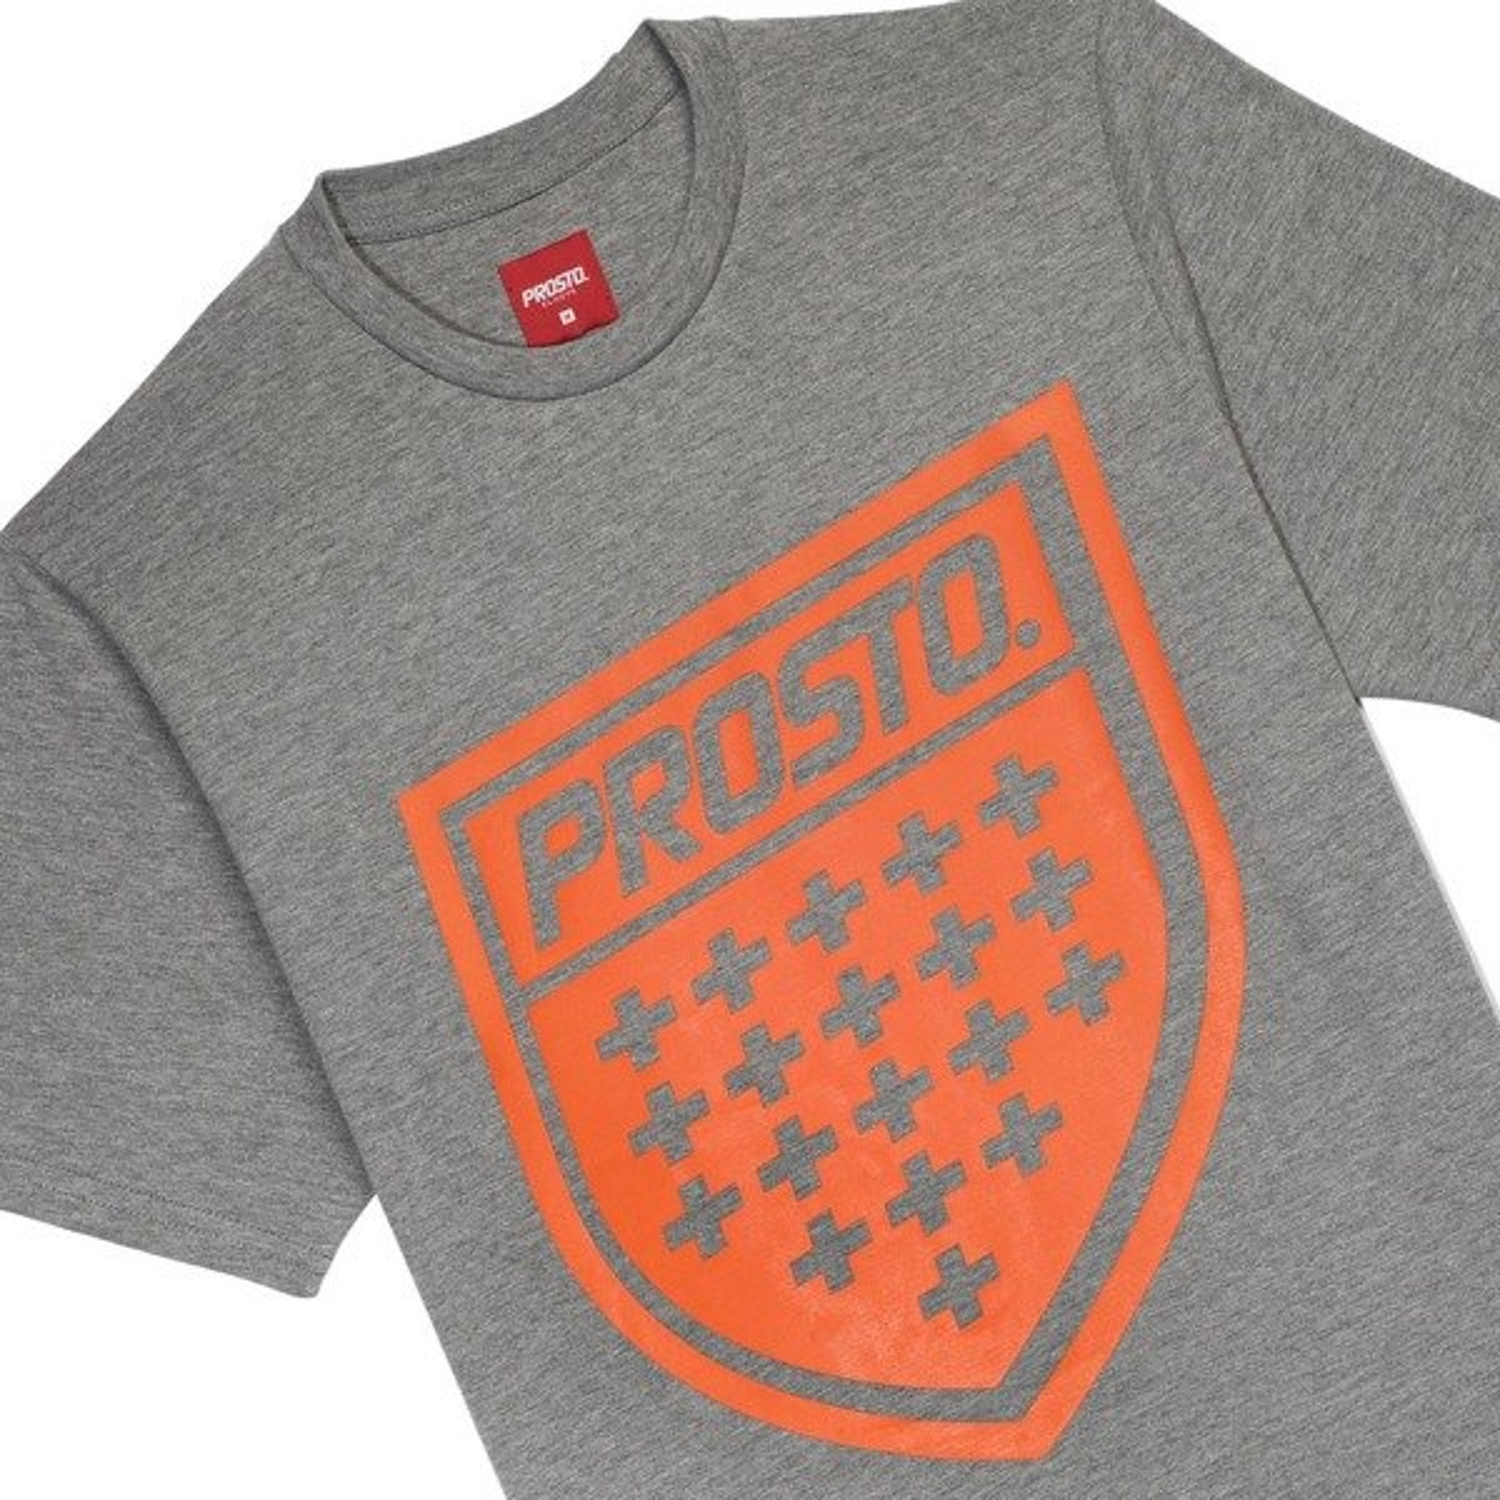 aed9e3686cf64 Koszulka T-Shirt Prosto Klasyk Shield XIX concrete grey - Producent ...